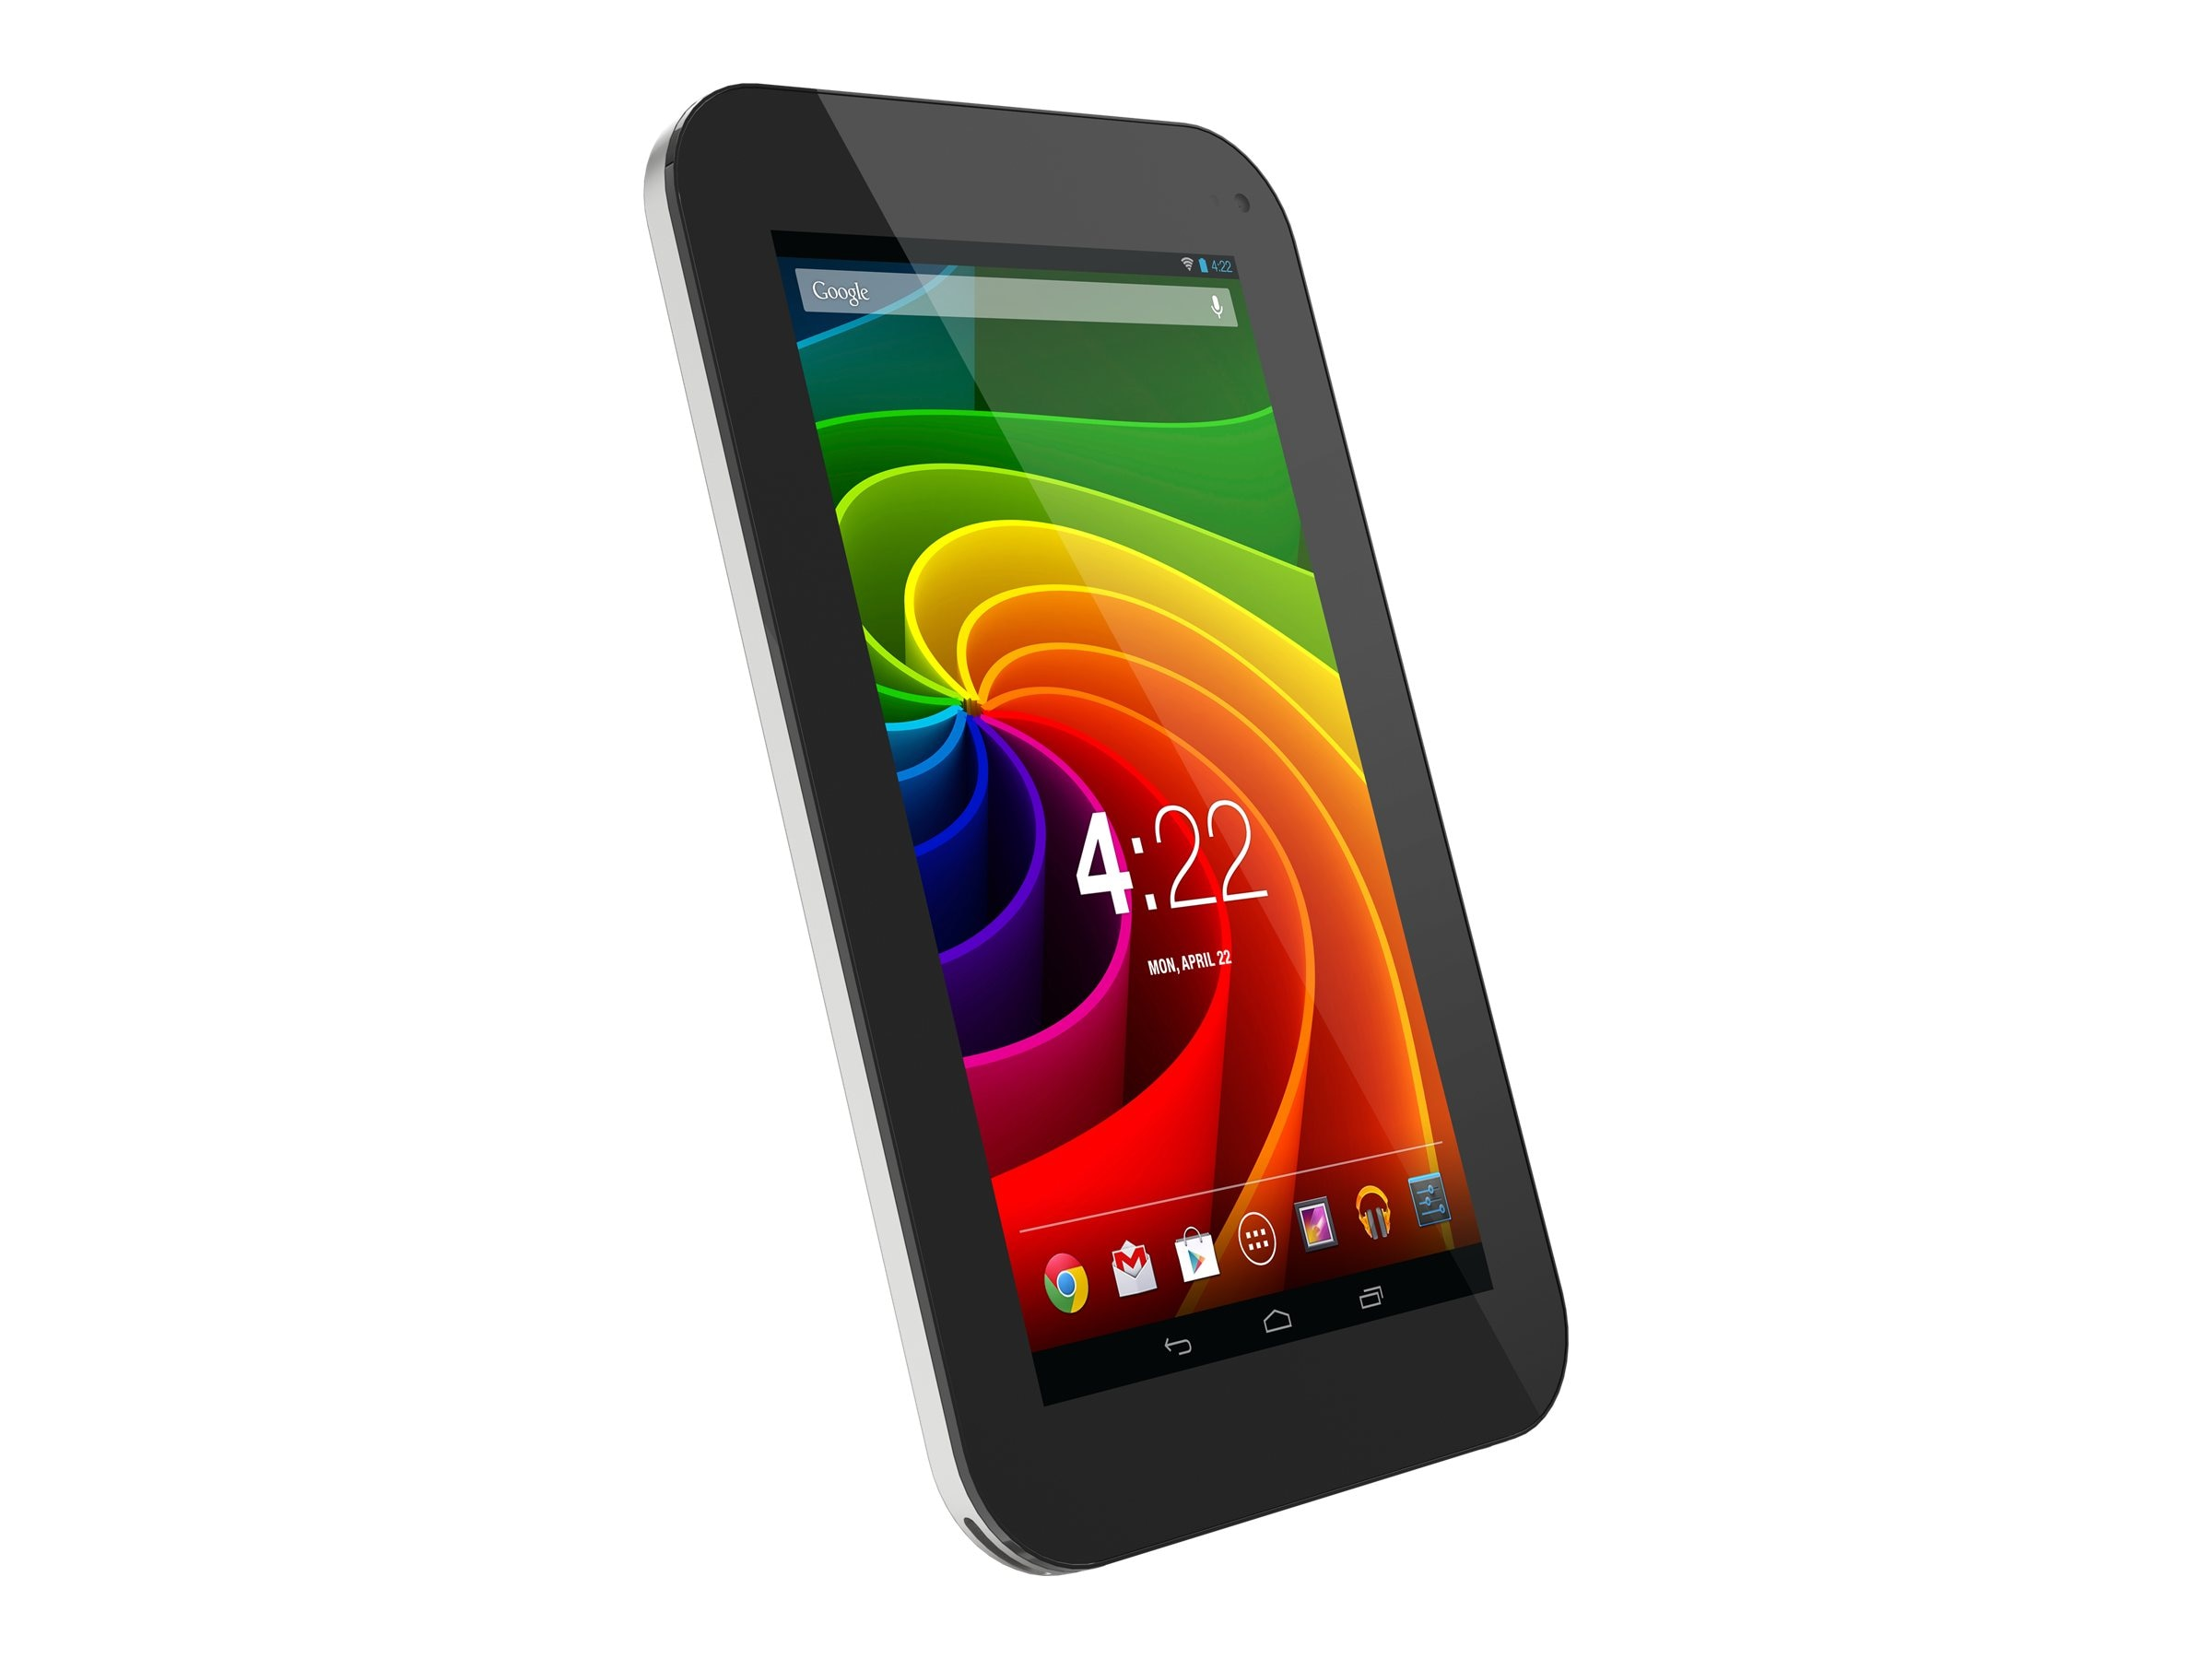 Toshiba Excite AT7 RK3188 QC 1.6GHz 1GB 8GB SSD bgn BT 2xWC 7 WSVGA MT Android 4.2.2, PDA0GU-002001